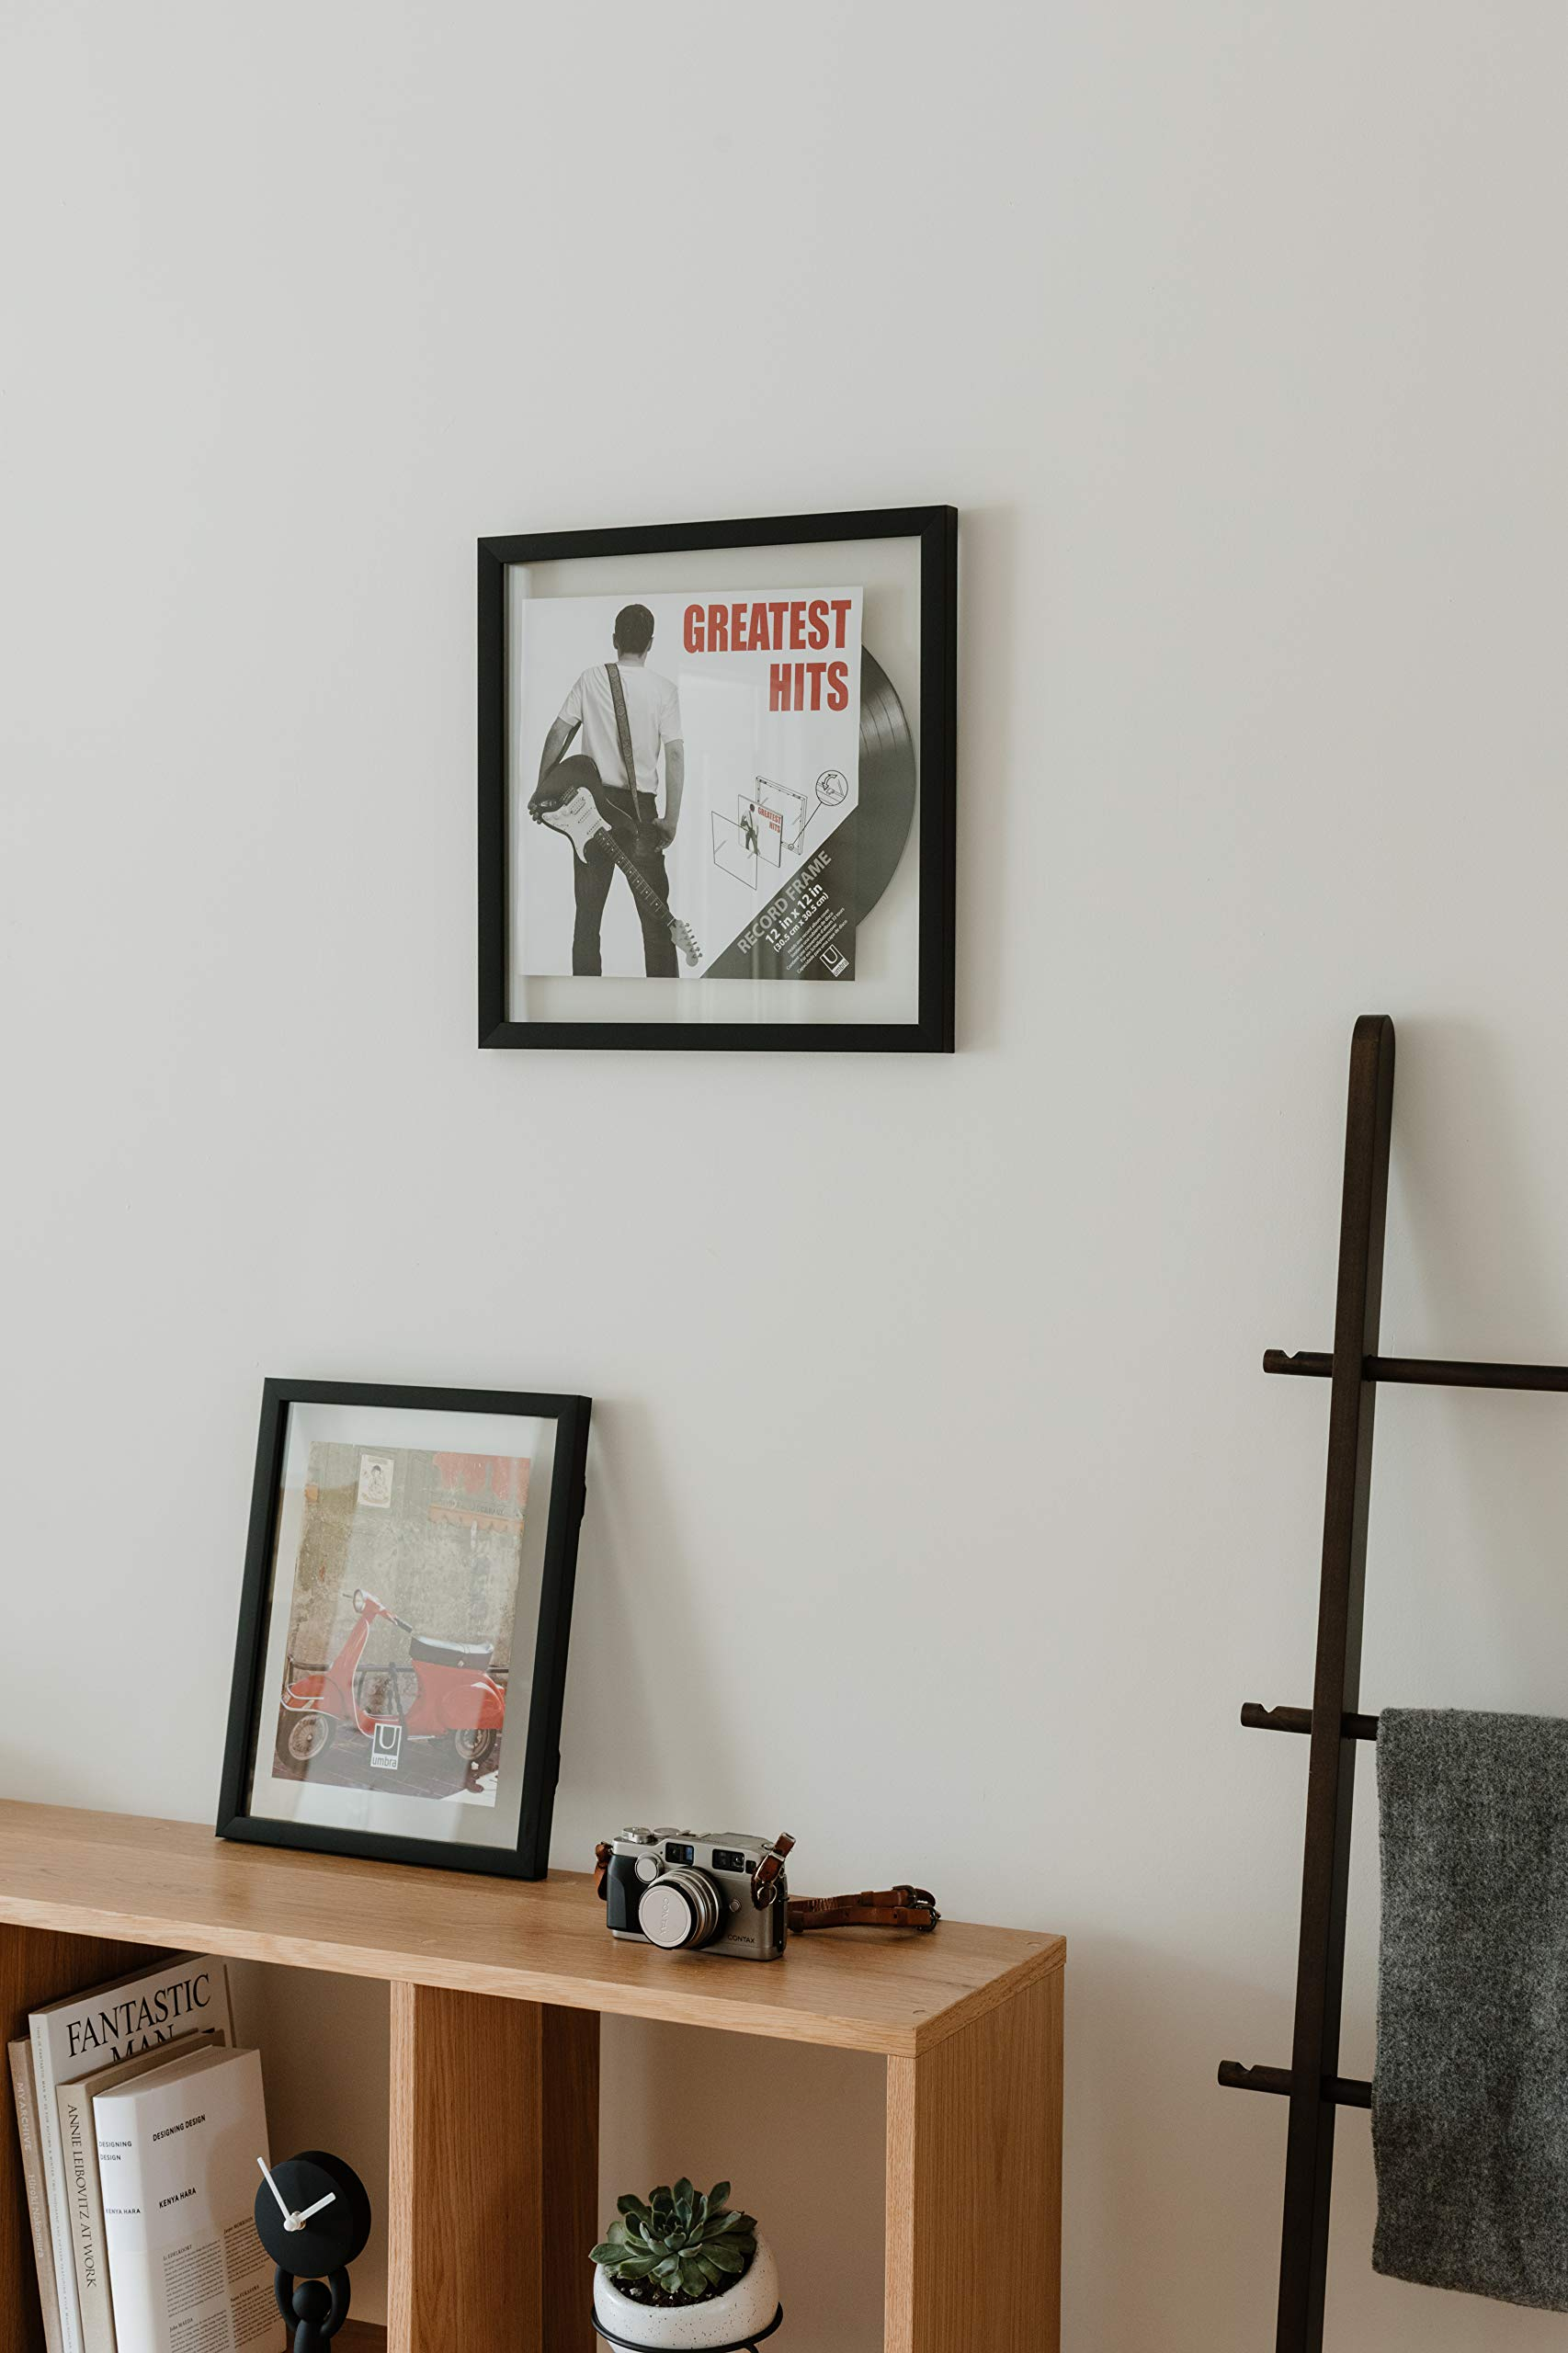 Umbra Record Album Frame 14-1/2x14-1/2-Inch, Modern Picture Frame Designed to Display a Floating 12-Inch by 12-Inch Album Cover by Umbra (Image #9)